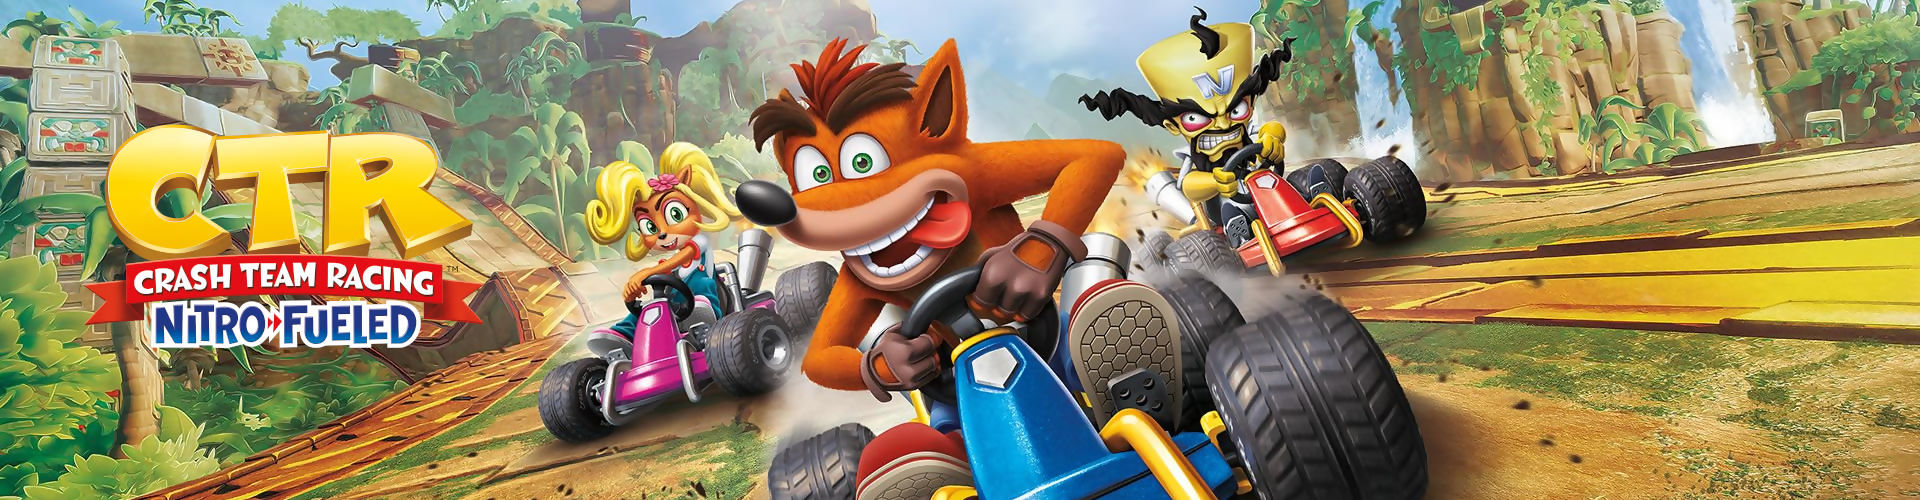 Crash Team Racing Nitro-Fueled - All the reviews and the European average score